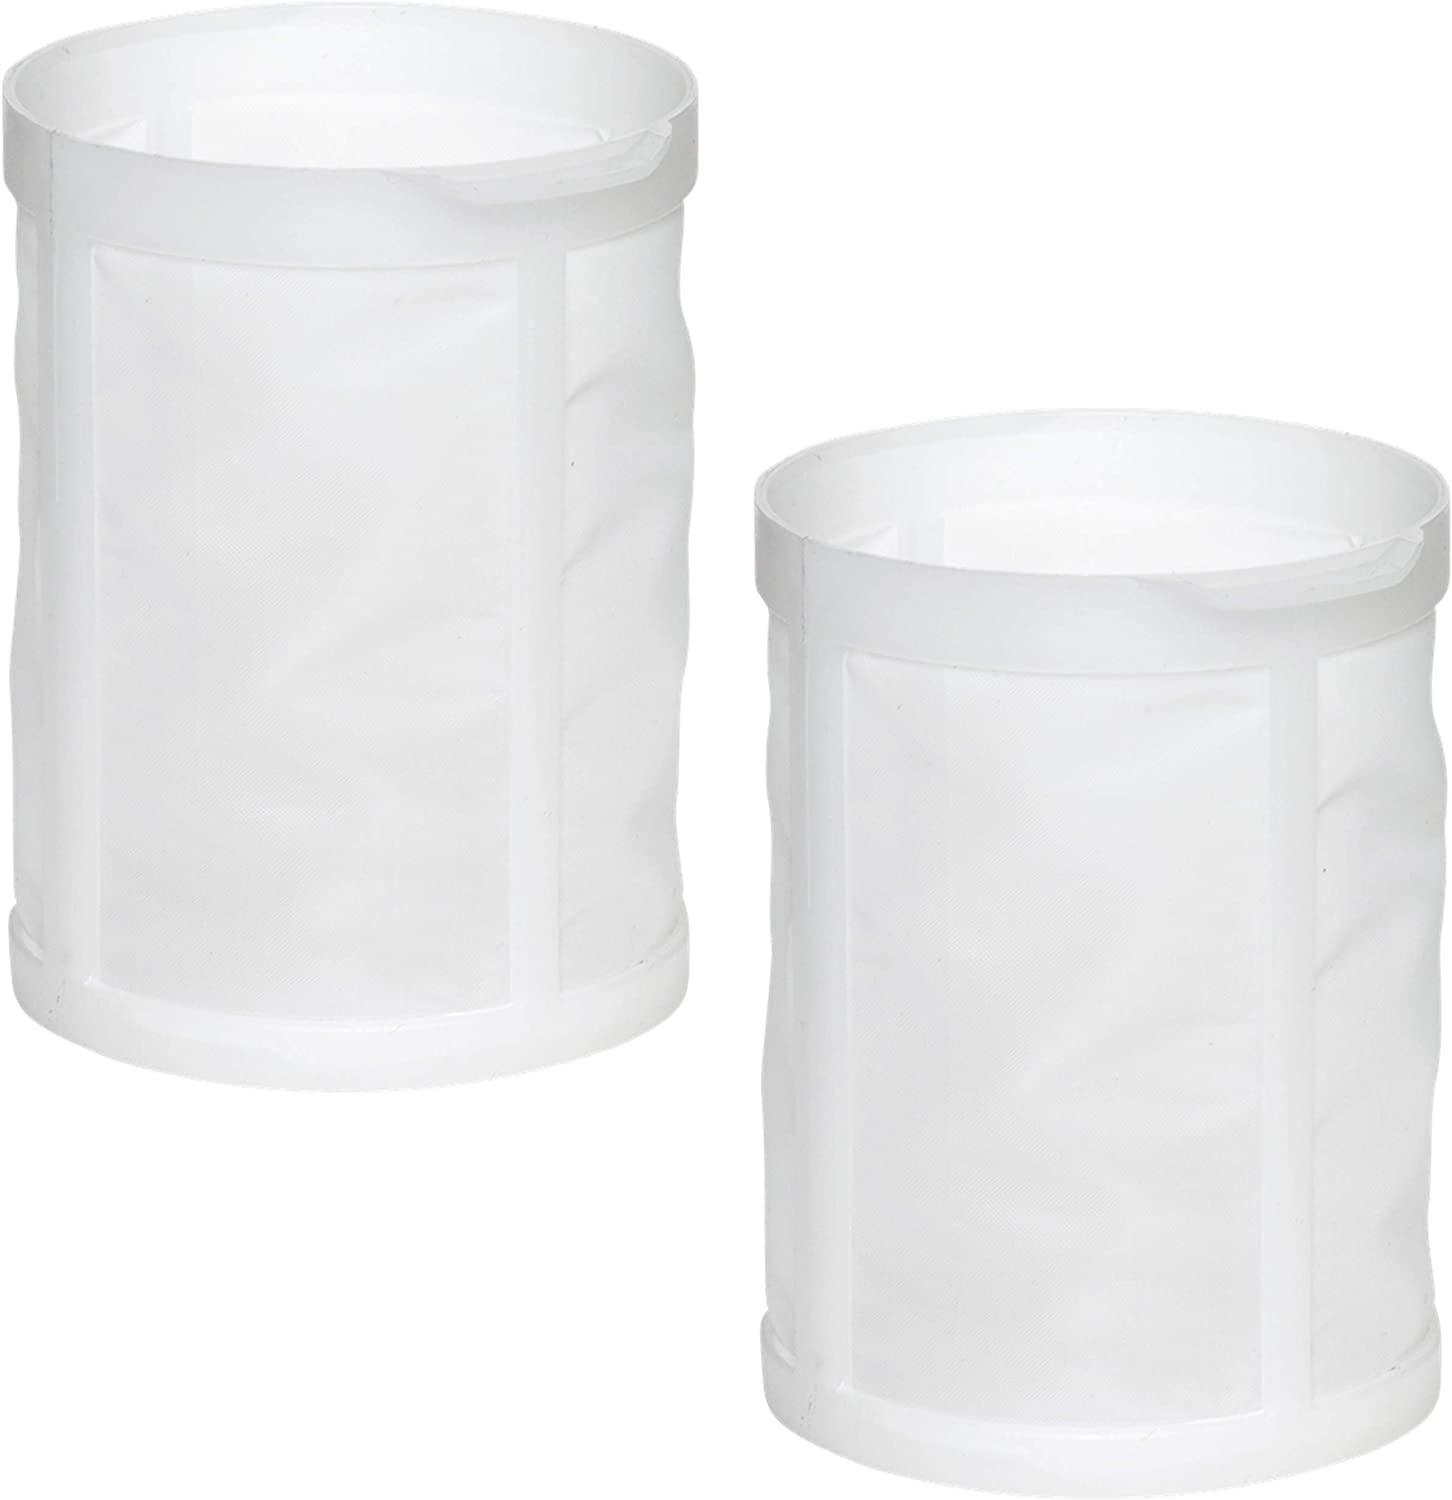 Makita 451208-3 Pre Filter – 2 Pack